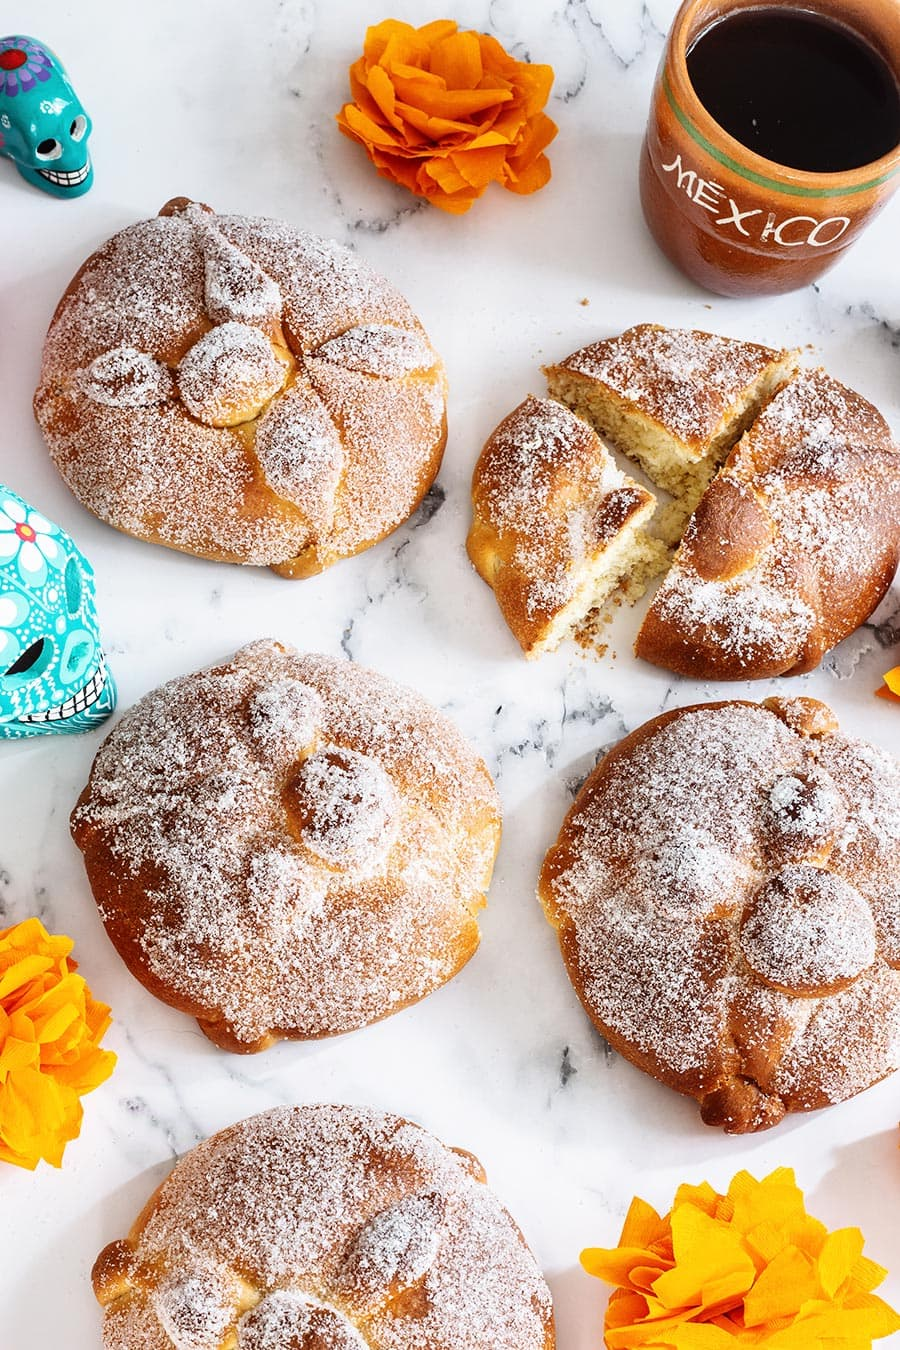 Bread of the dead, a.k.a pan de muerto displayed on a marble surface.